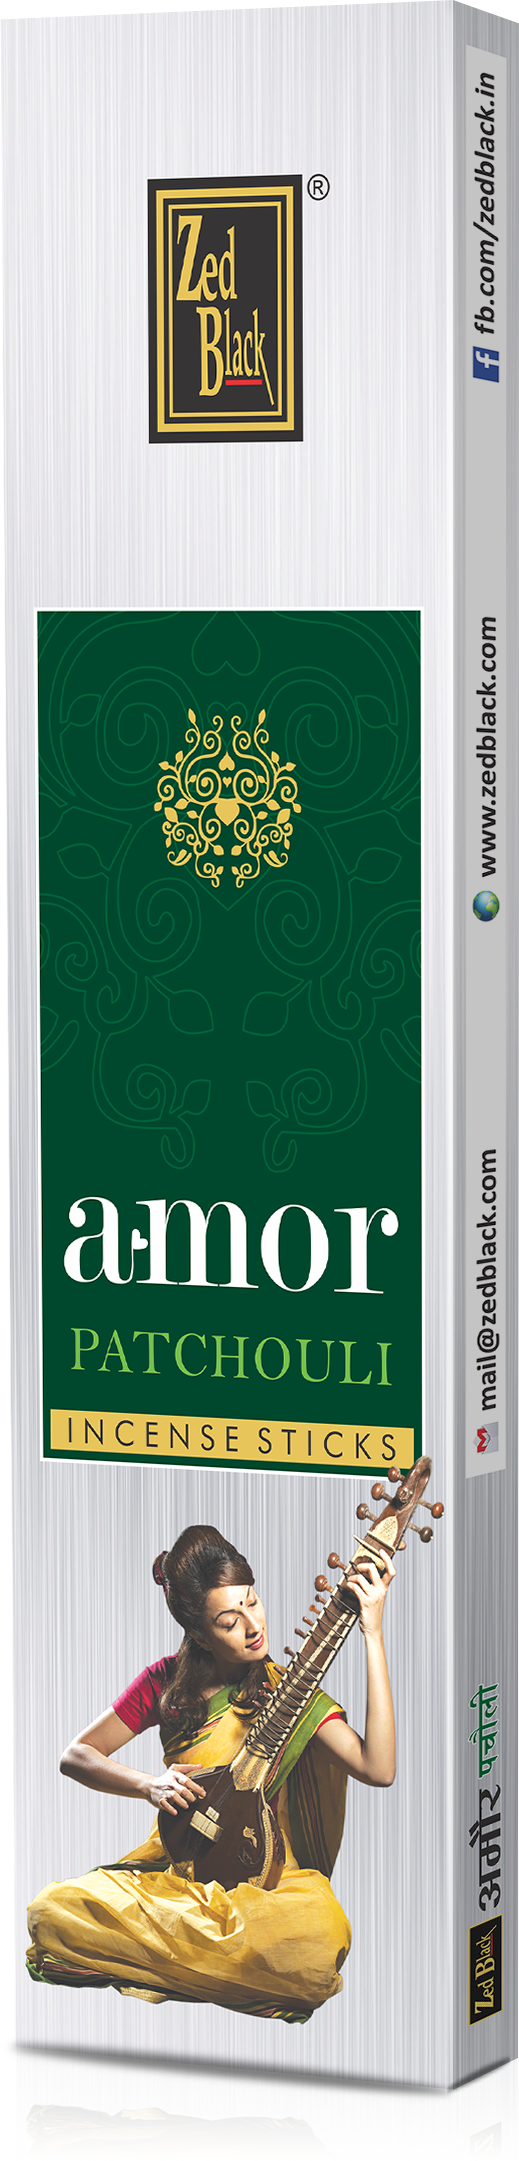 ZED BLACK AMOR SILVER -Pack of 12 ASSORTED - The KO Shop Australia Wholesale Suppliers Distributors of New Age Products & Natural Incense